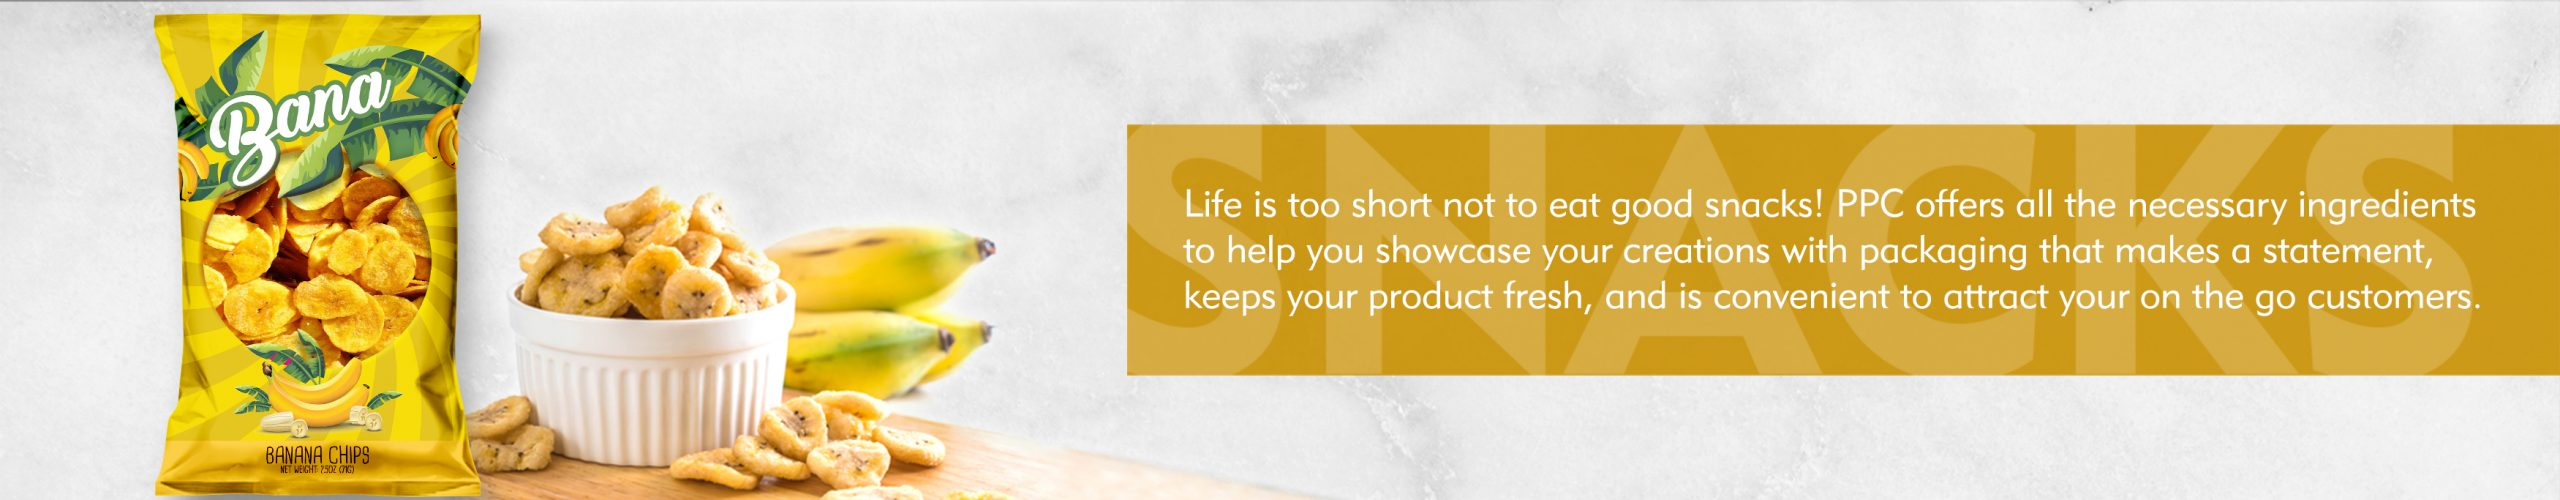 Snacks banner life is too short to not eat good snacks! PPC offers all the necessary ingredients to help you showcase your creations with packaging that makes a statement, keeps your product fresh